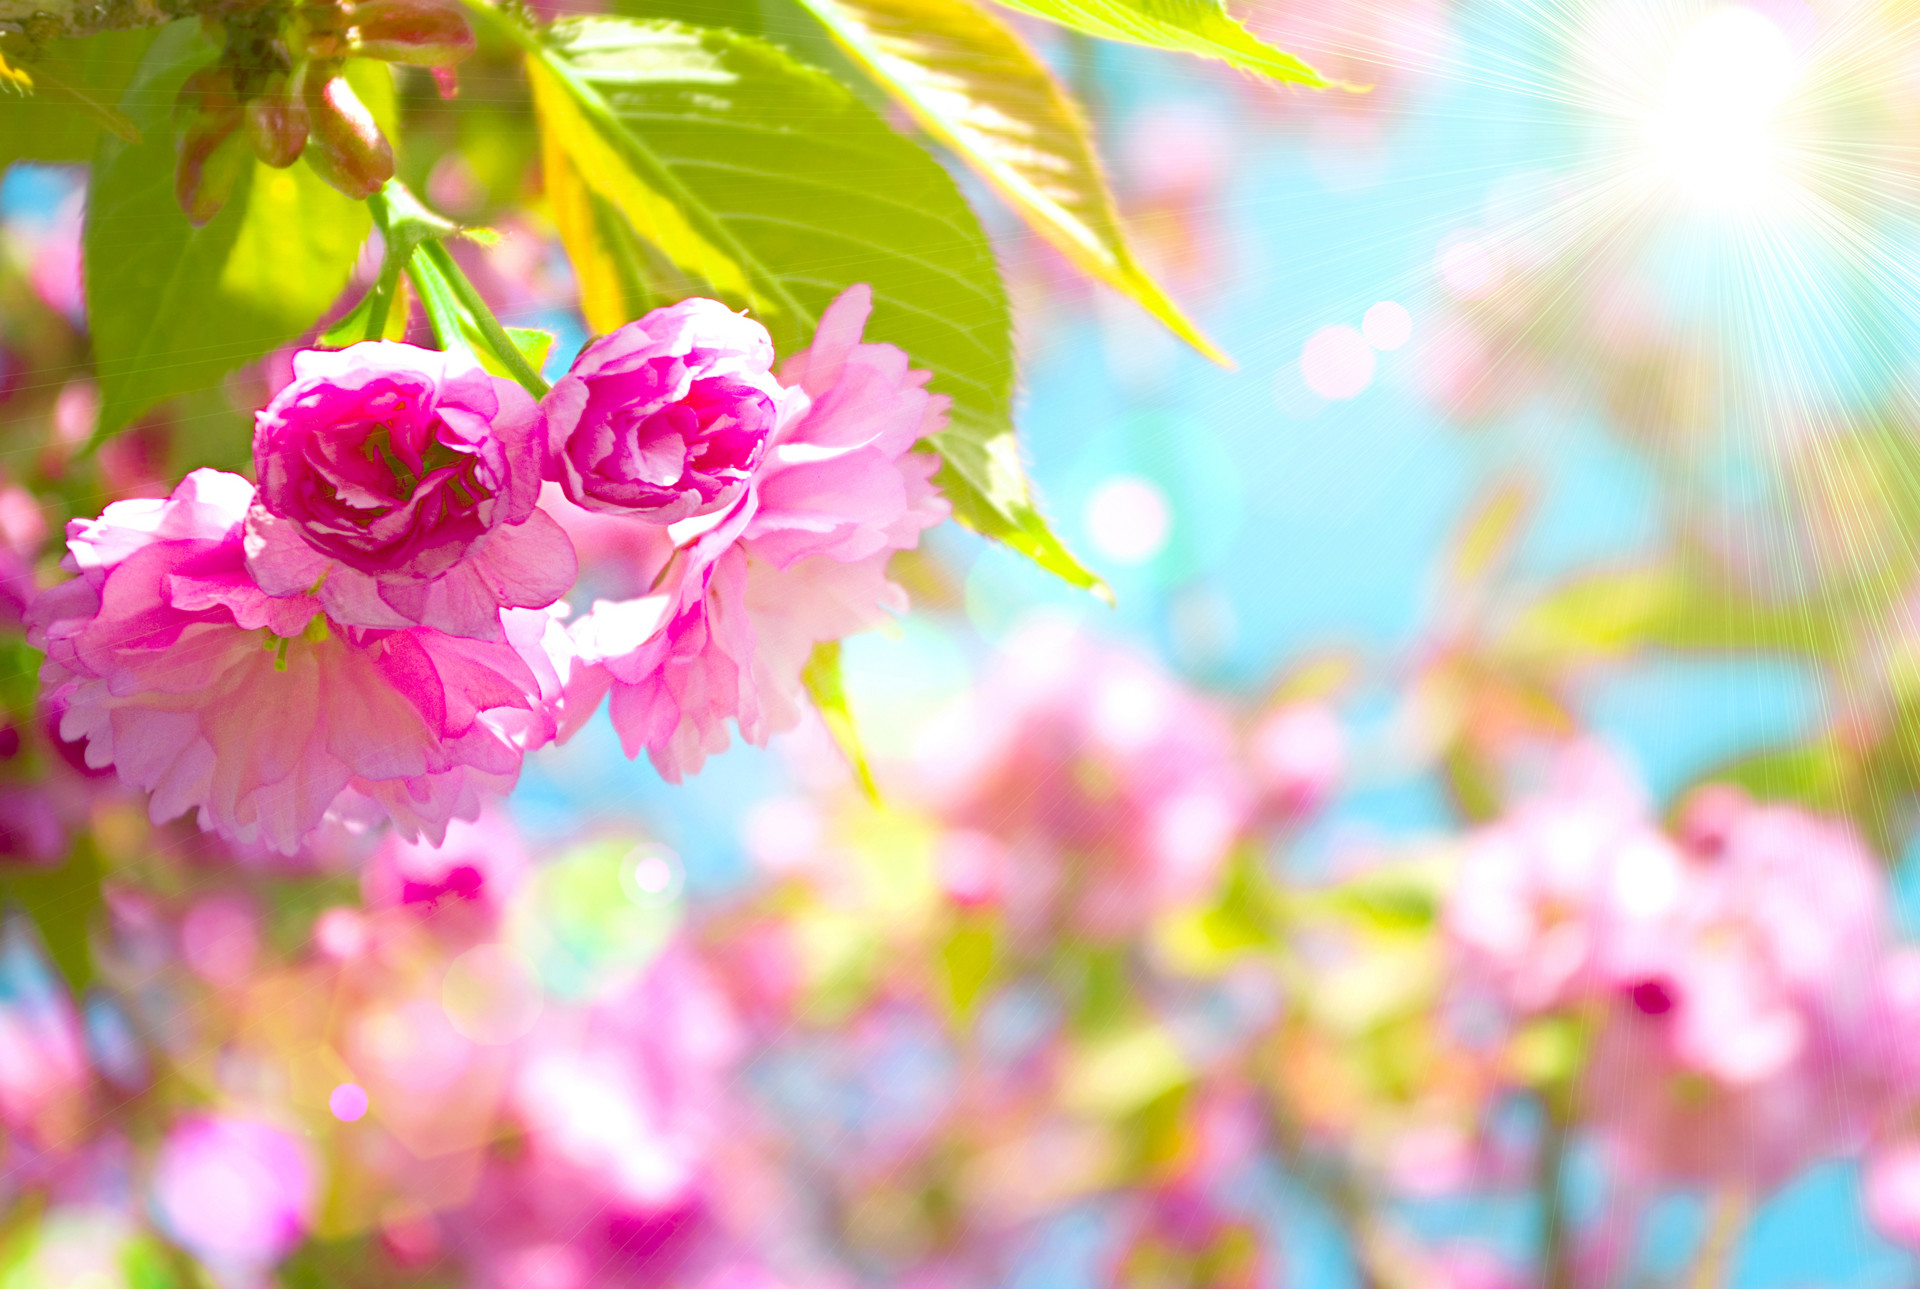 spring wallpaper and screensavers hd 70 images